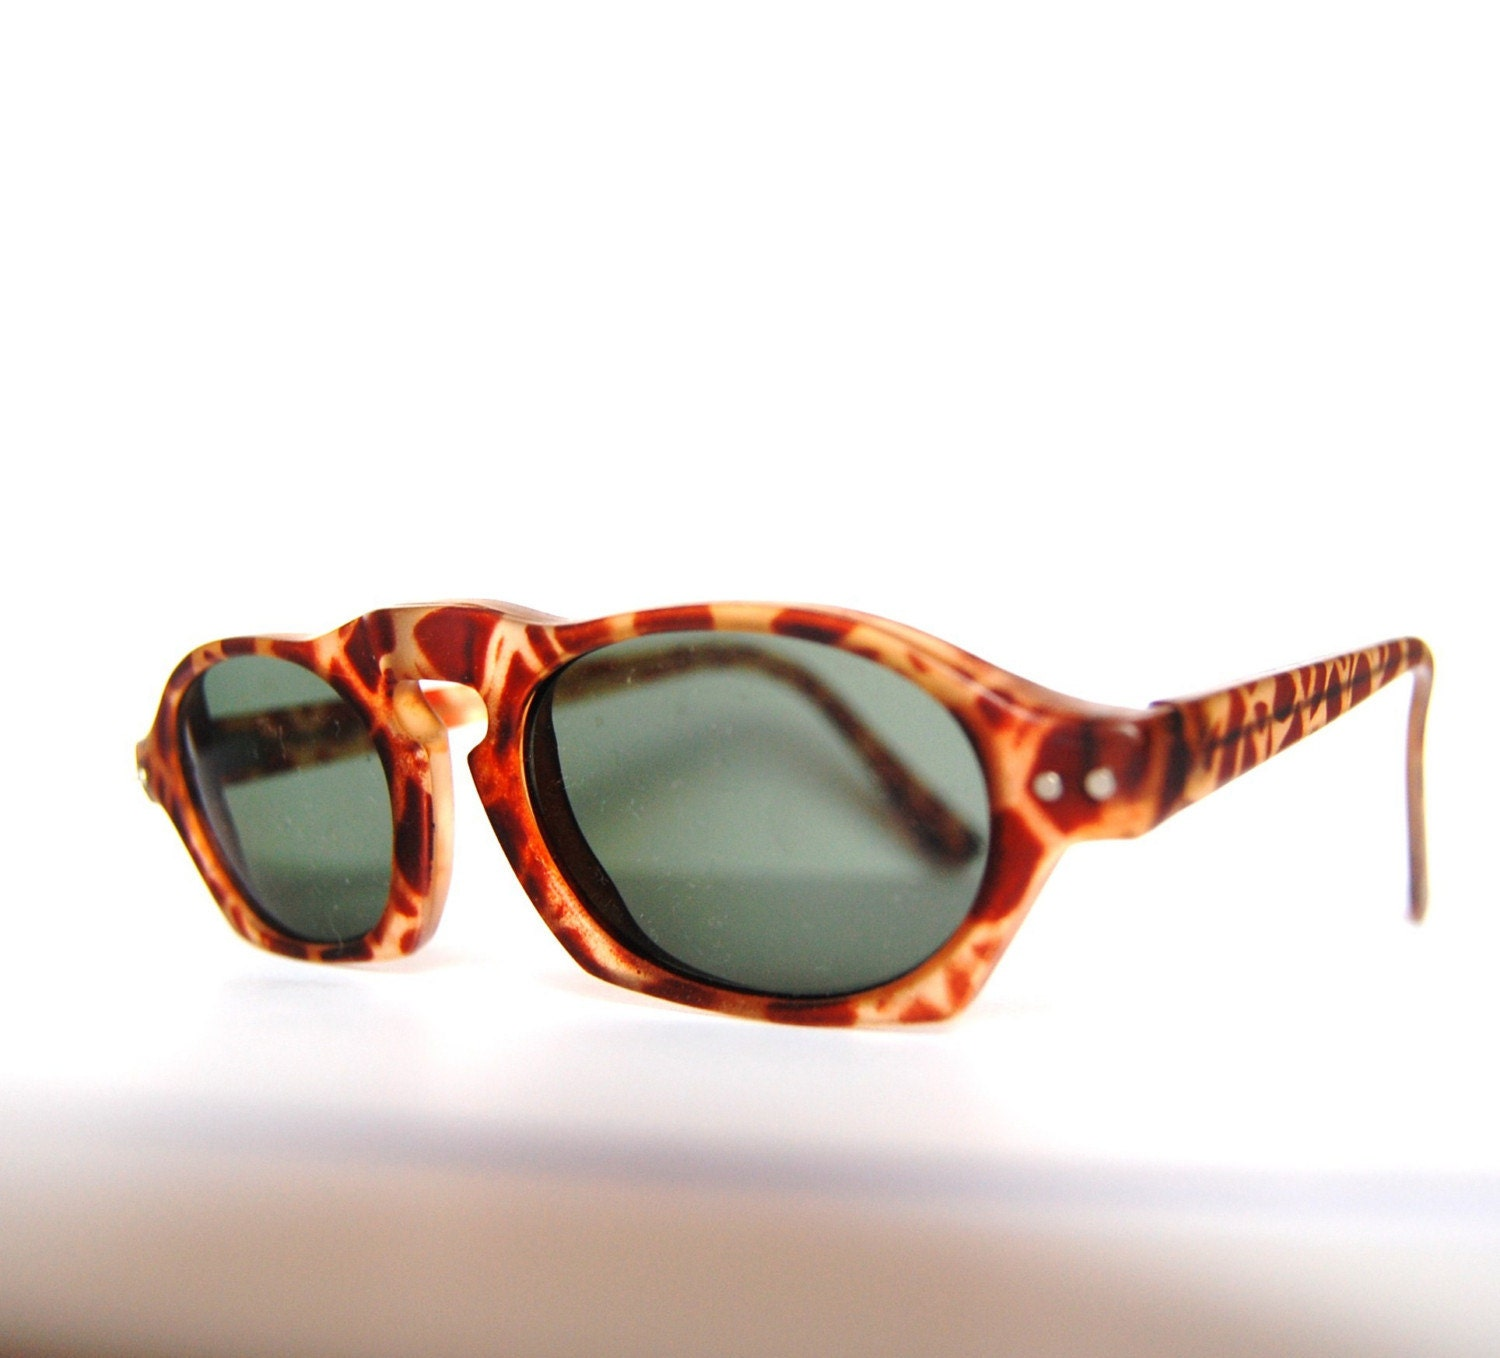 Vintage leopard sunglasses Germany by RetroEyewear on Etsy from etsy.com